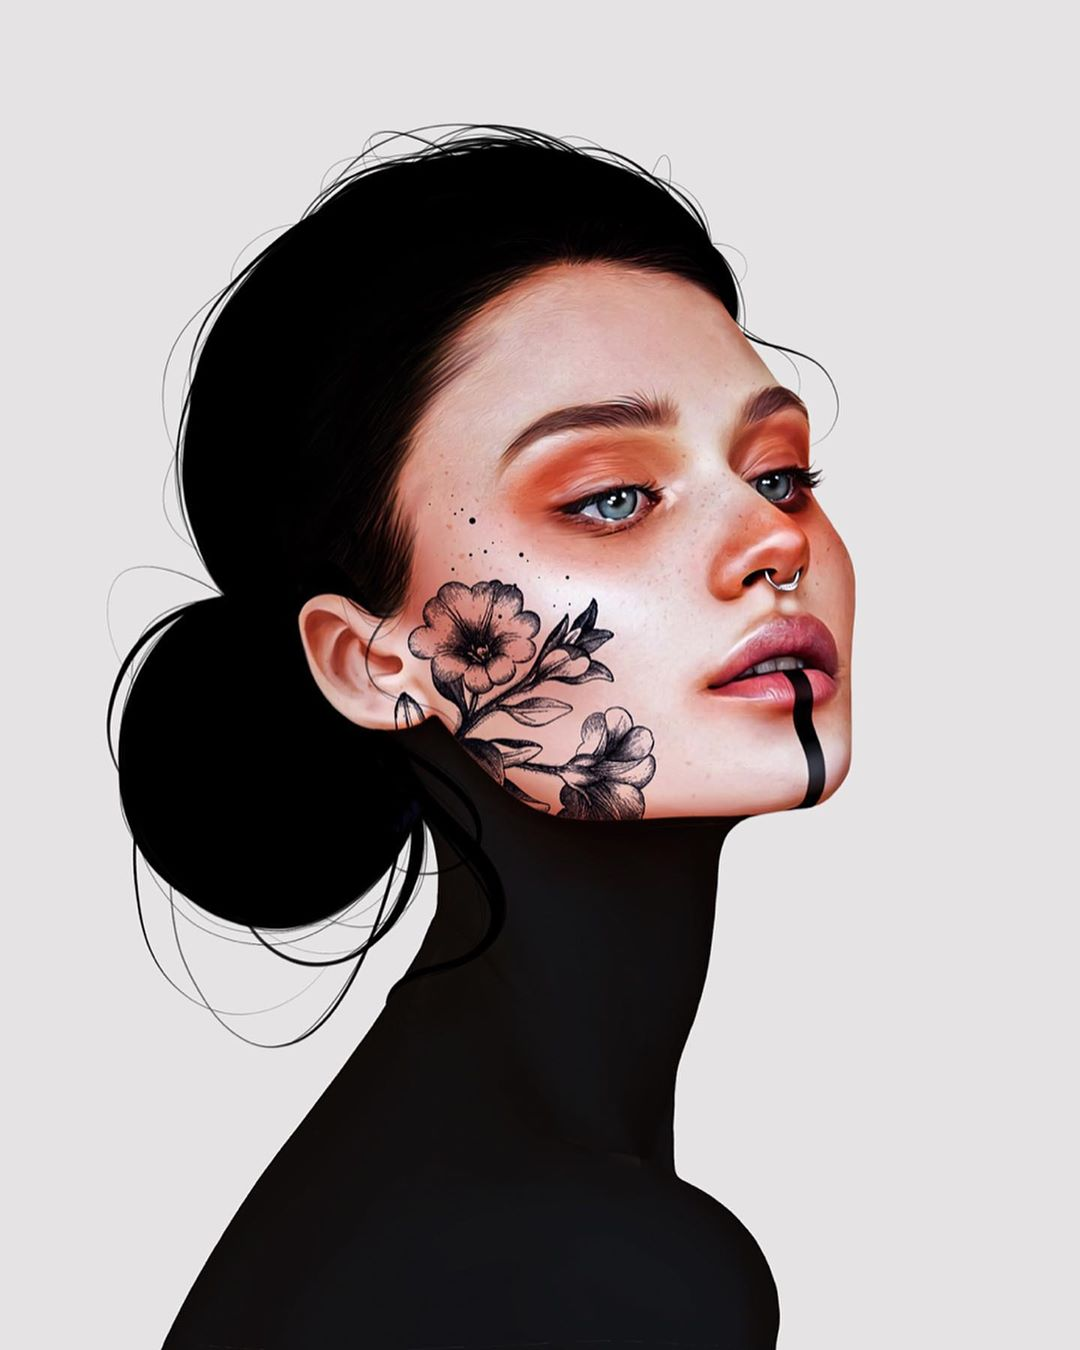 26-Year-Old Digital Artist With Model Looks Creates Stunning Female Illustrations On Tablet 8